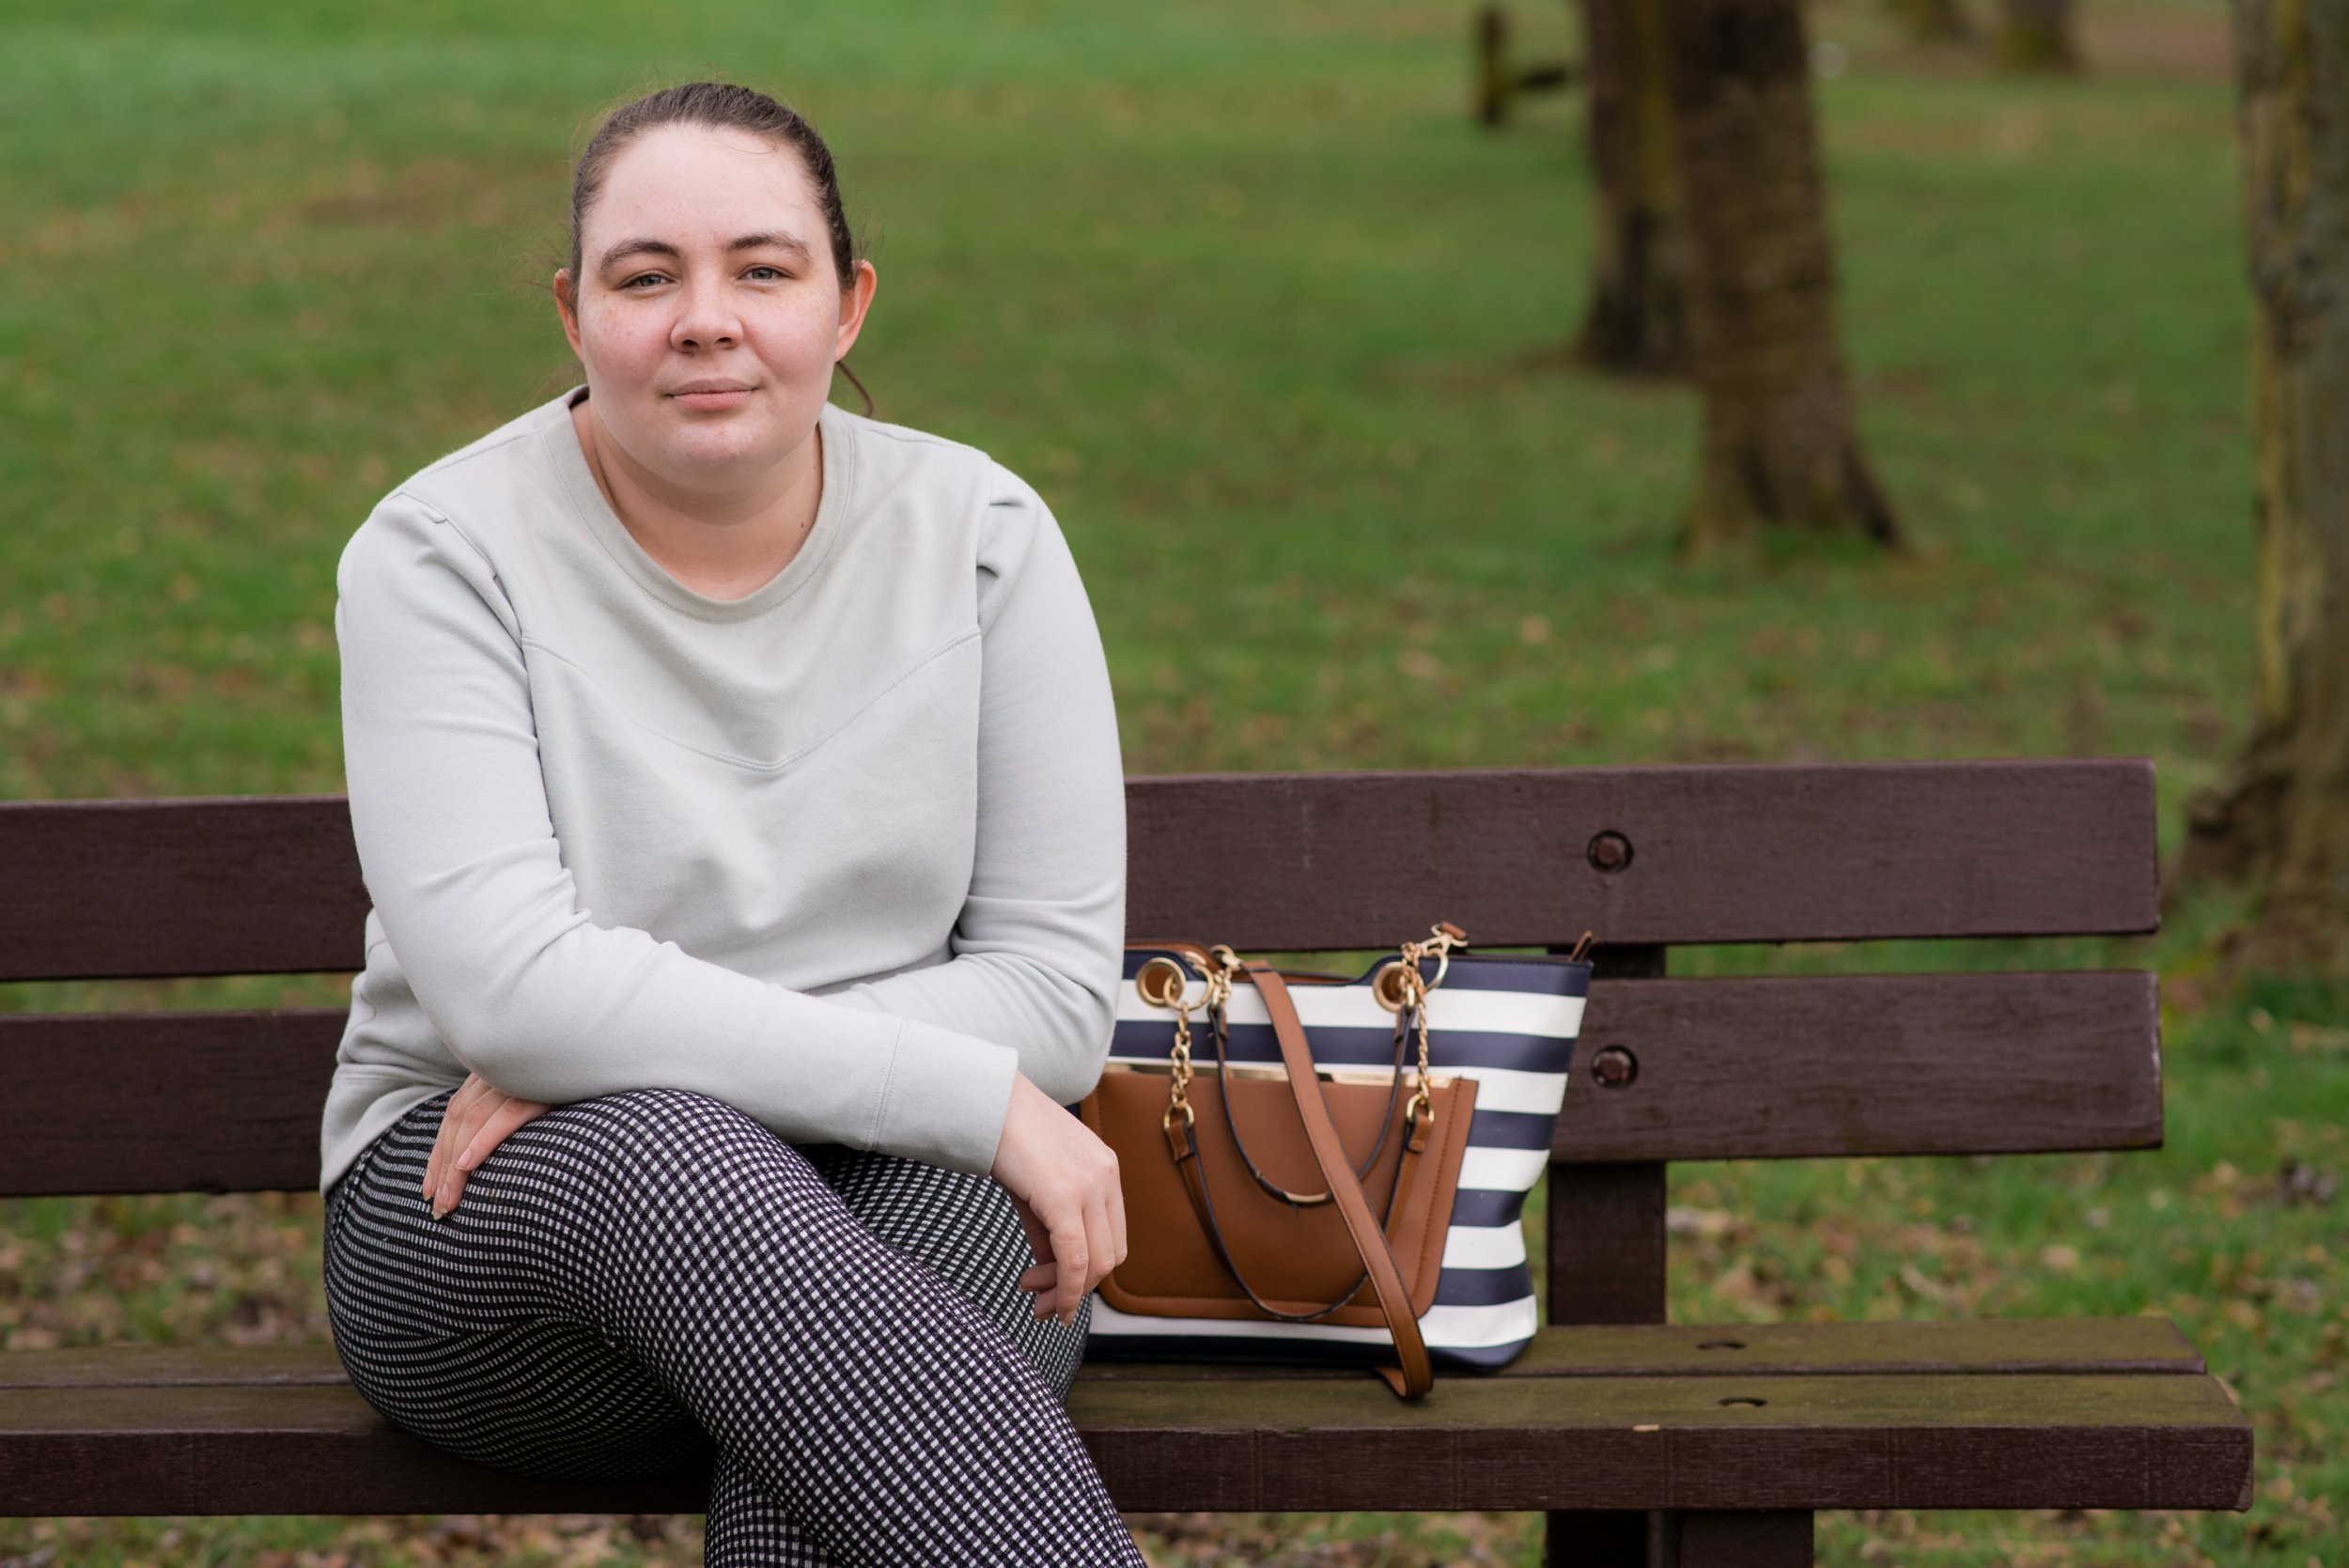 You Don't Look Sick: 'Asthma caused me to be hospitalised after vacuuming'